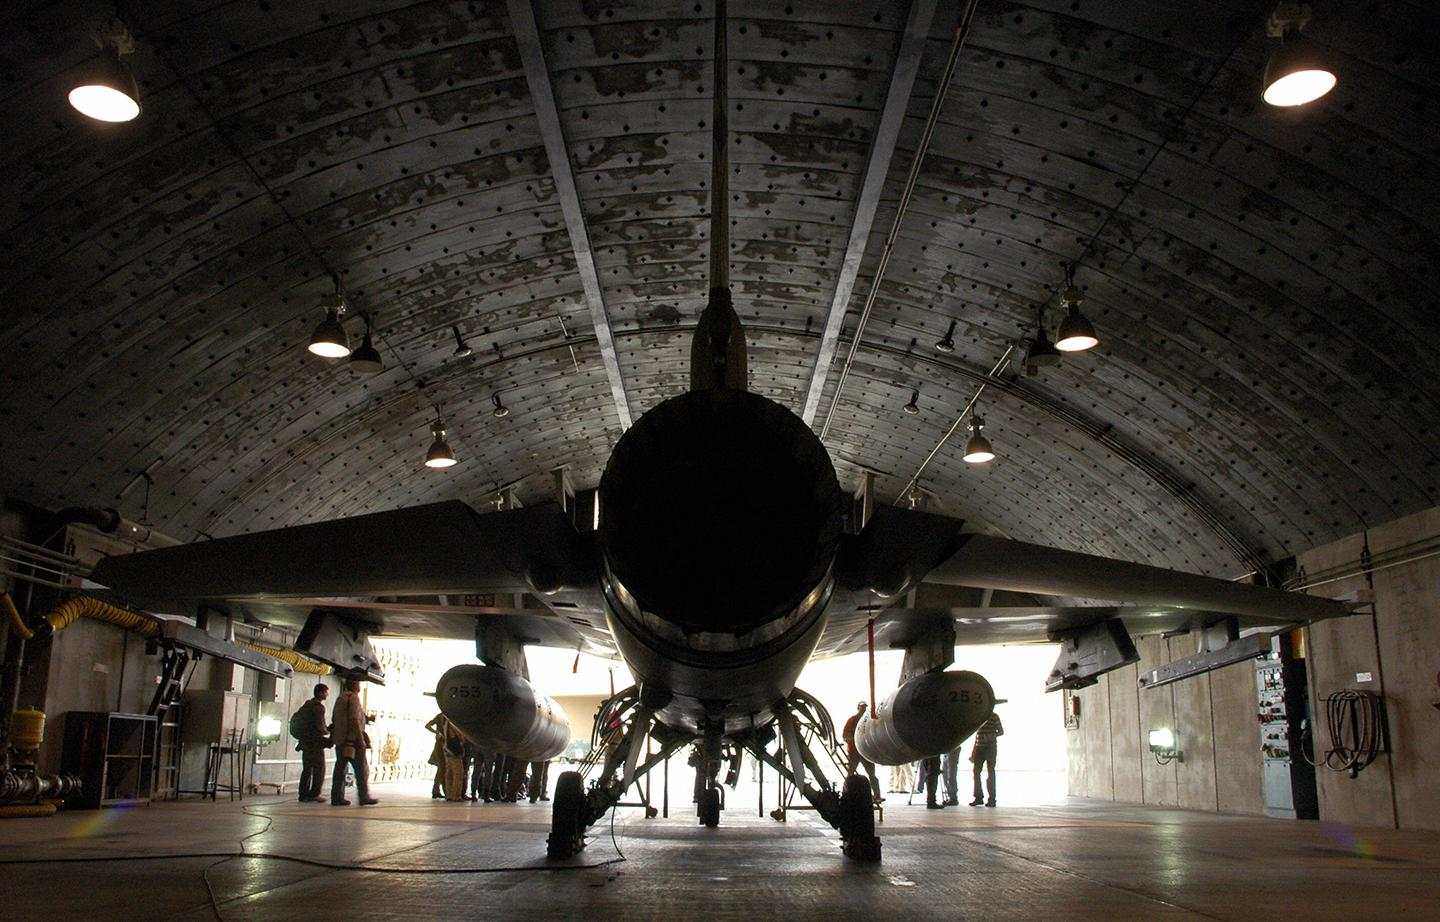 An Israeli air force F-16I fighter plane is seen at a hangar at the Ramon Air Force Base, in the Negev desert, in southern Israel, on November 19, 2008. On February 10, Syrian anti-aircraft missiles shot down an Israeli F-16, the first Israeli fighter downed since 1982.